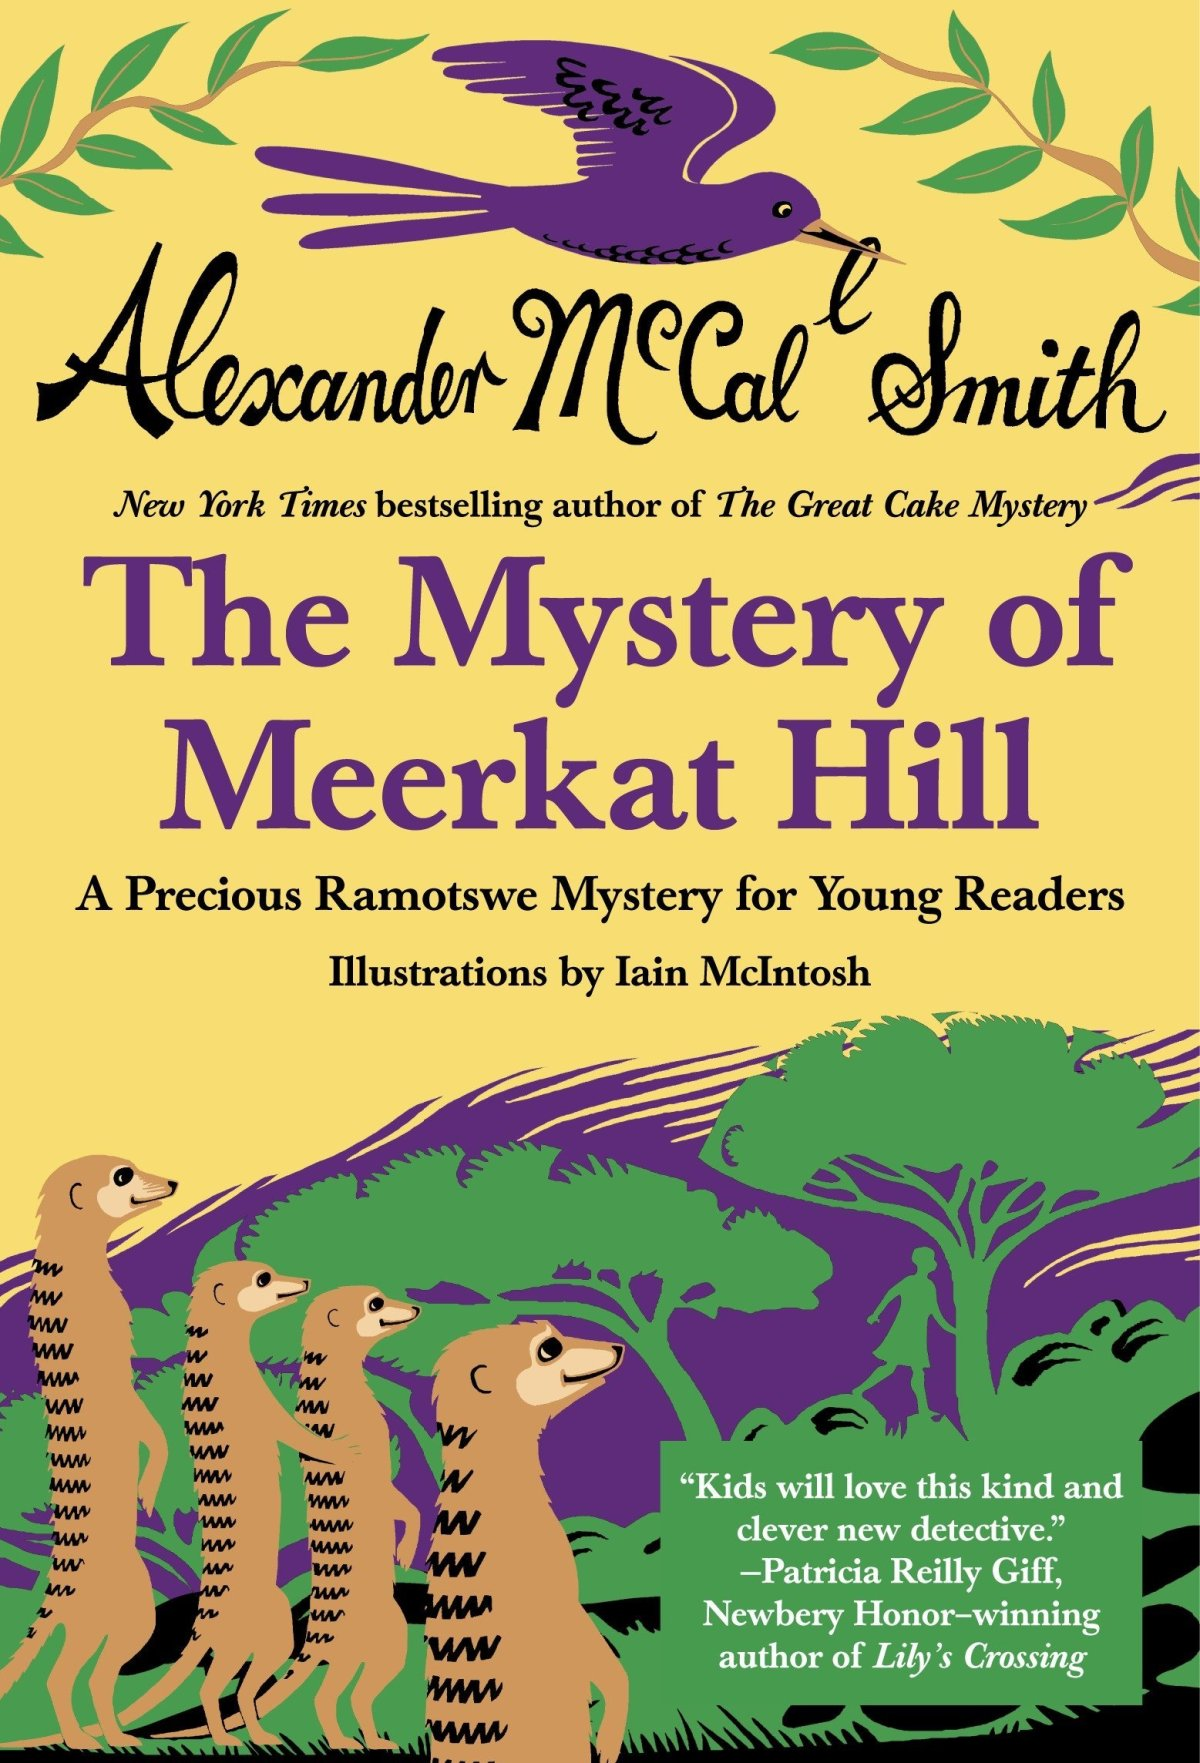 mystery of meerkat hill cover image